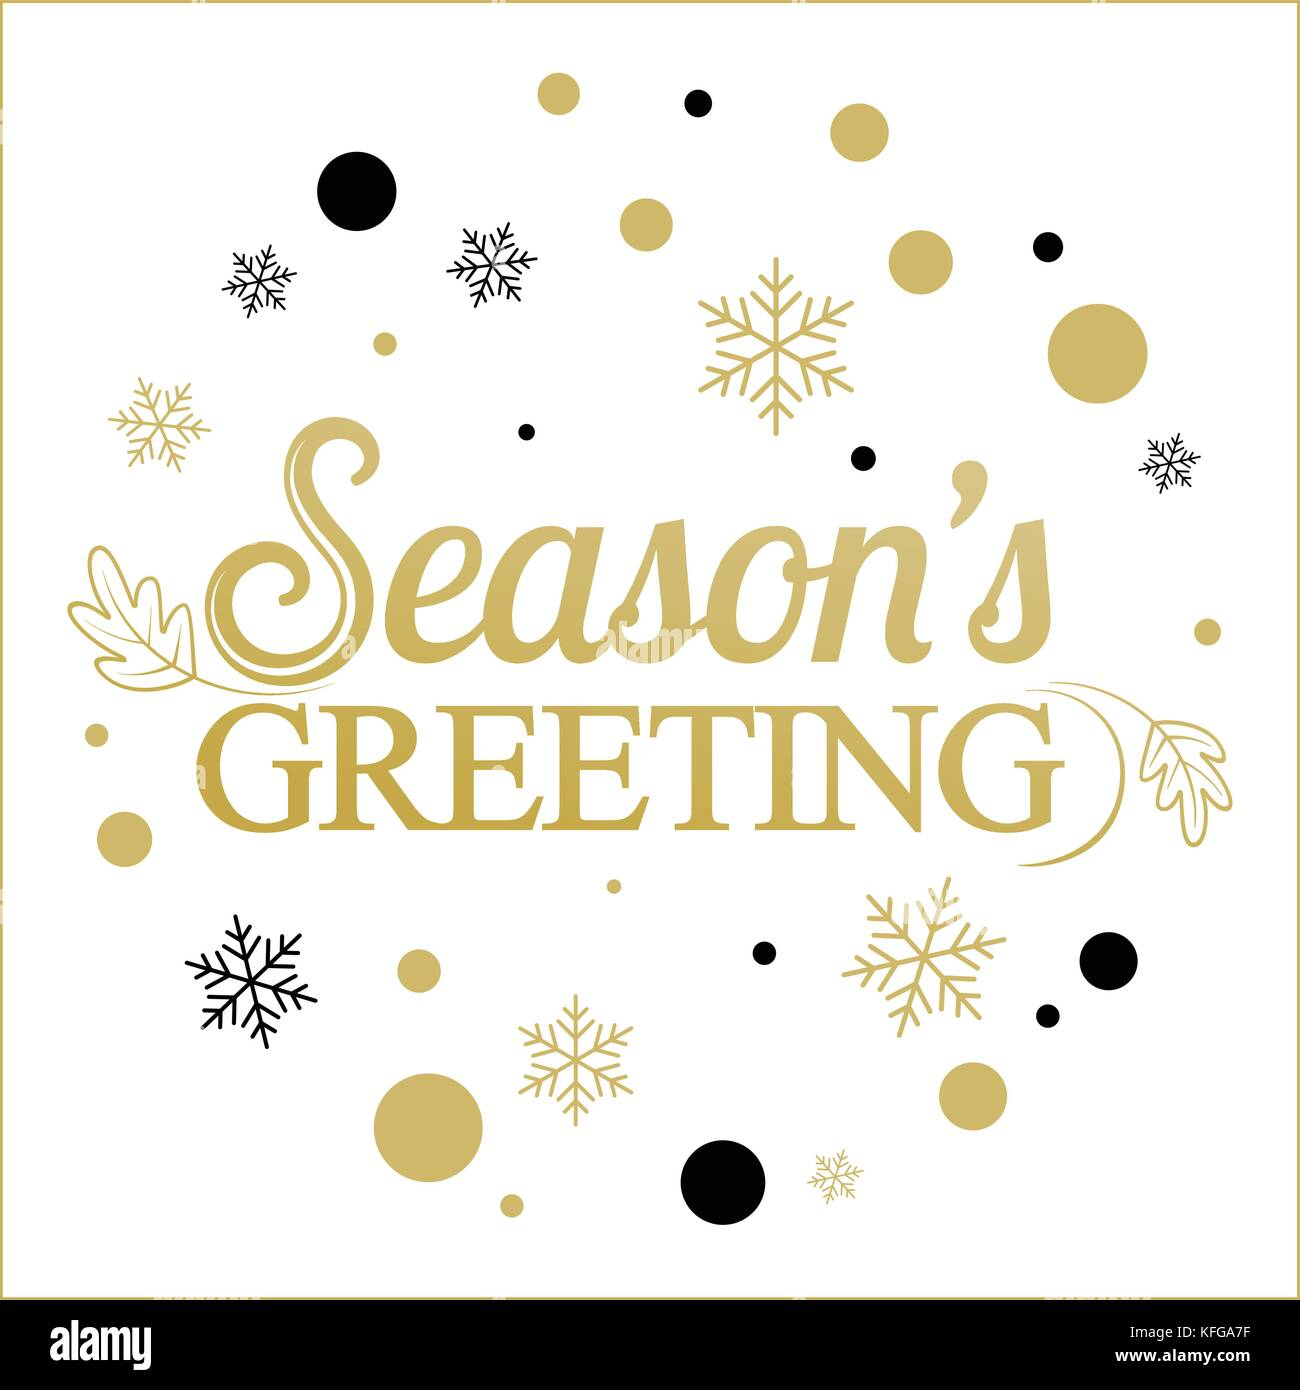 Seasons greetings banner stock photos seasons greetings banner vector gold seasons greetings card designntage card for holidays stock image m4hsunfo